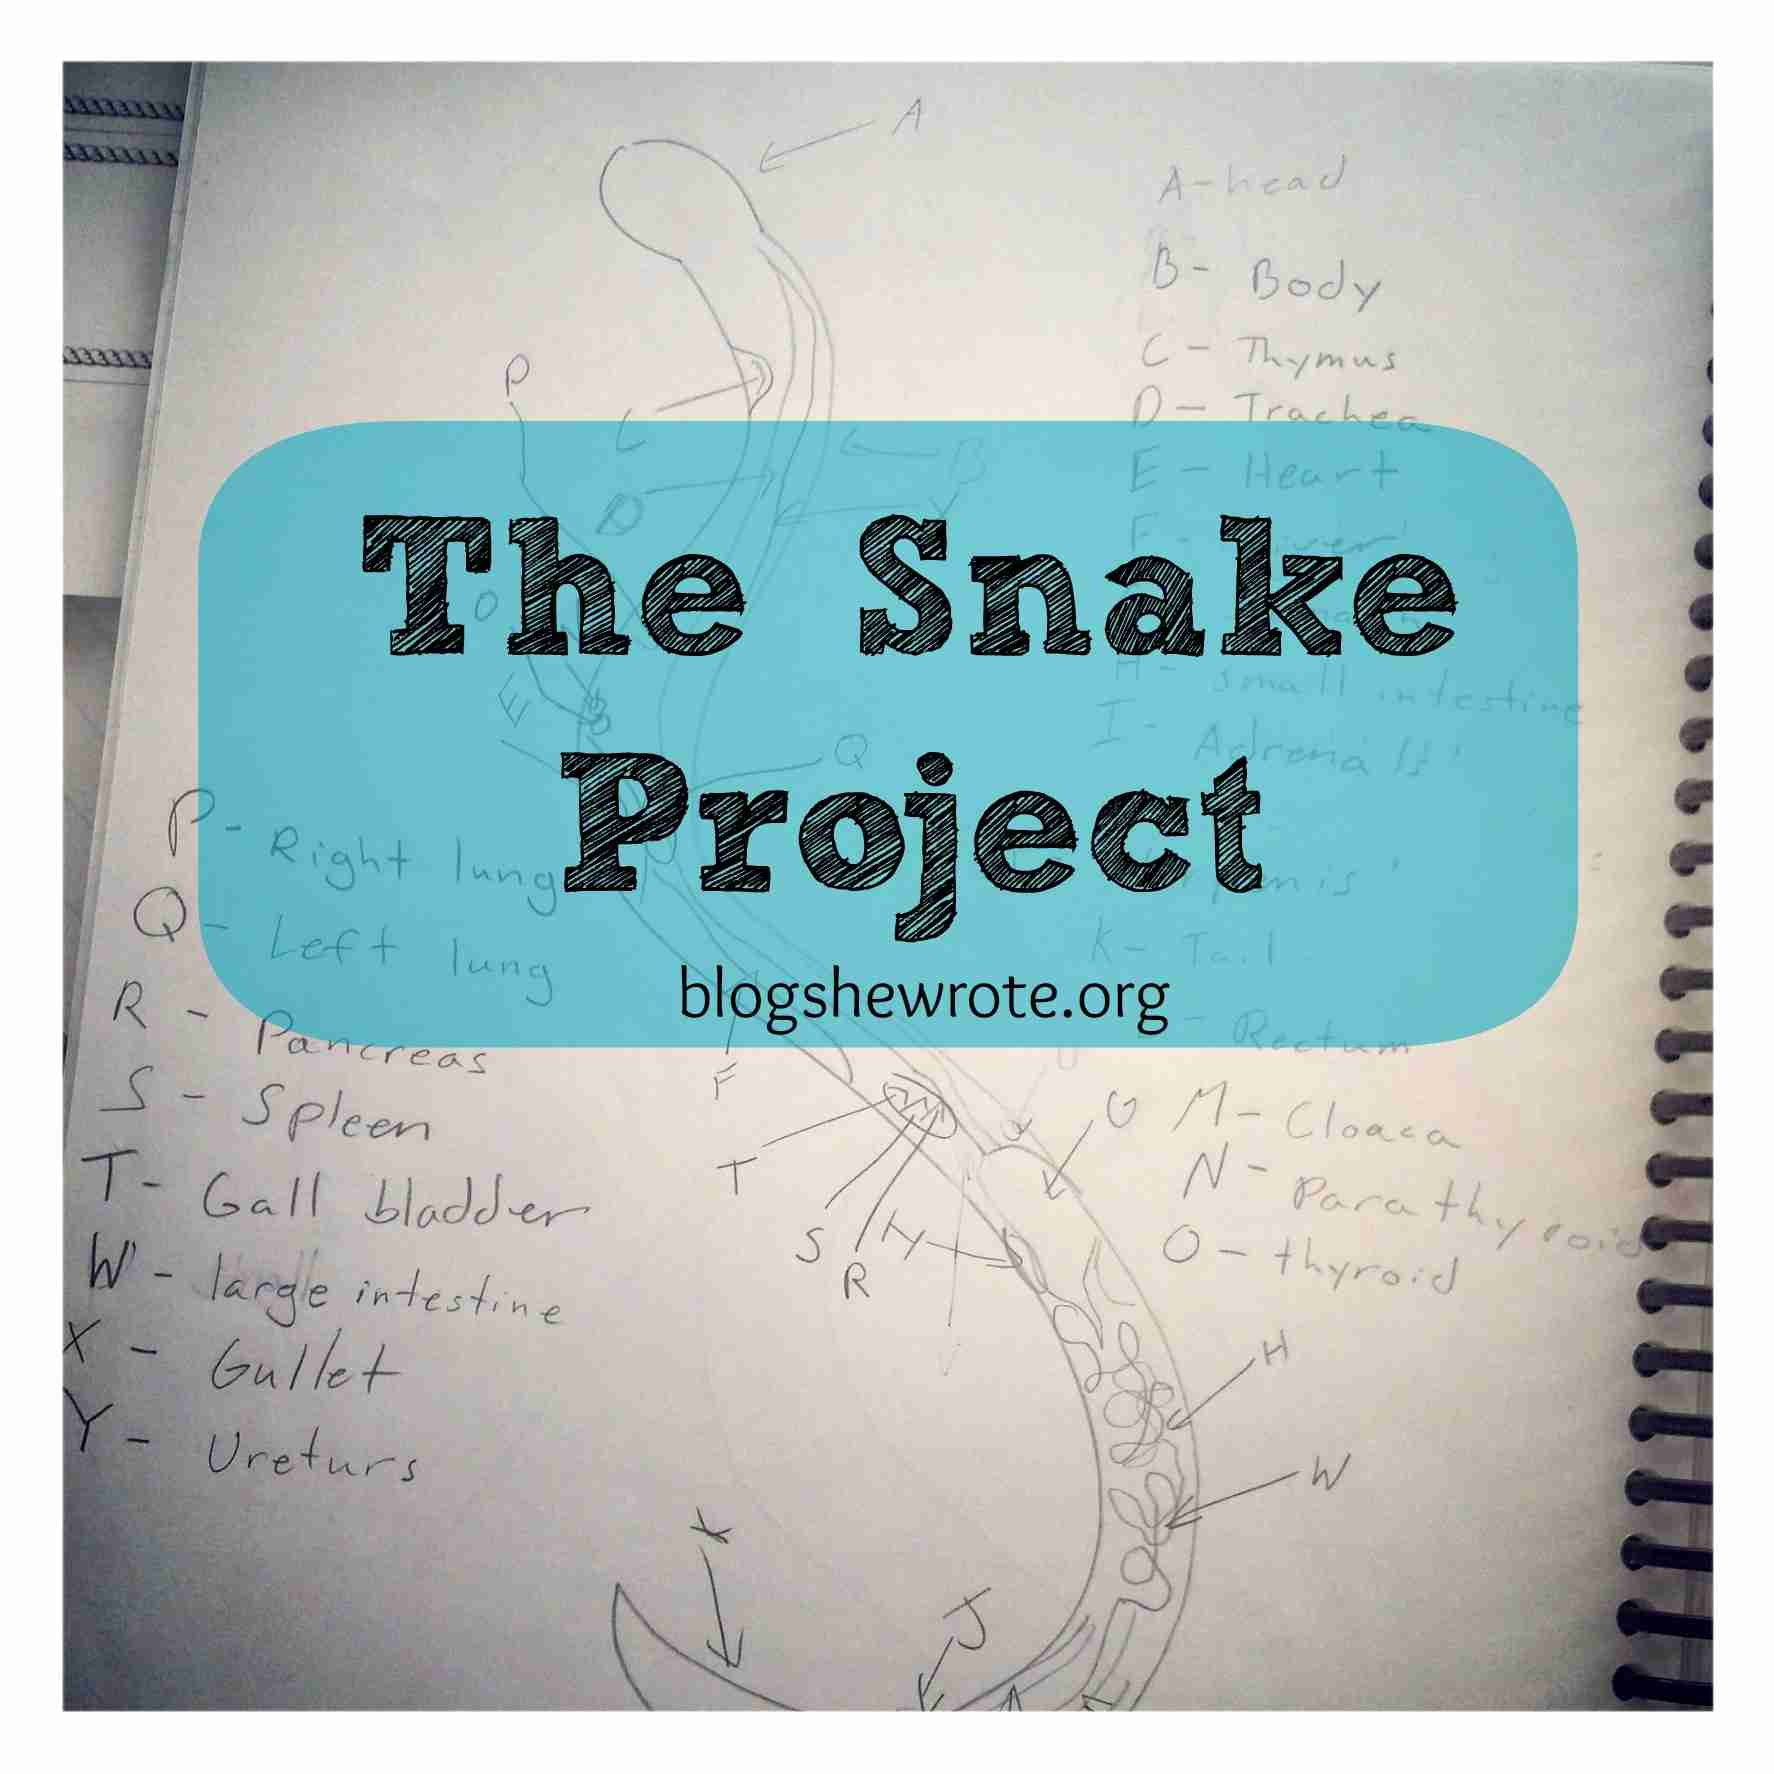 The Snake Project